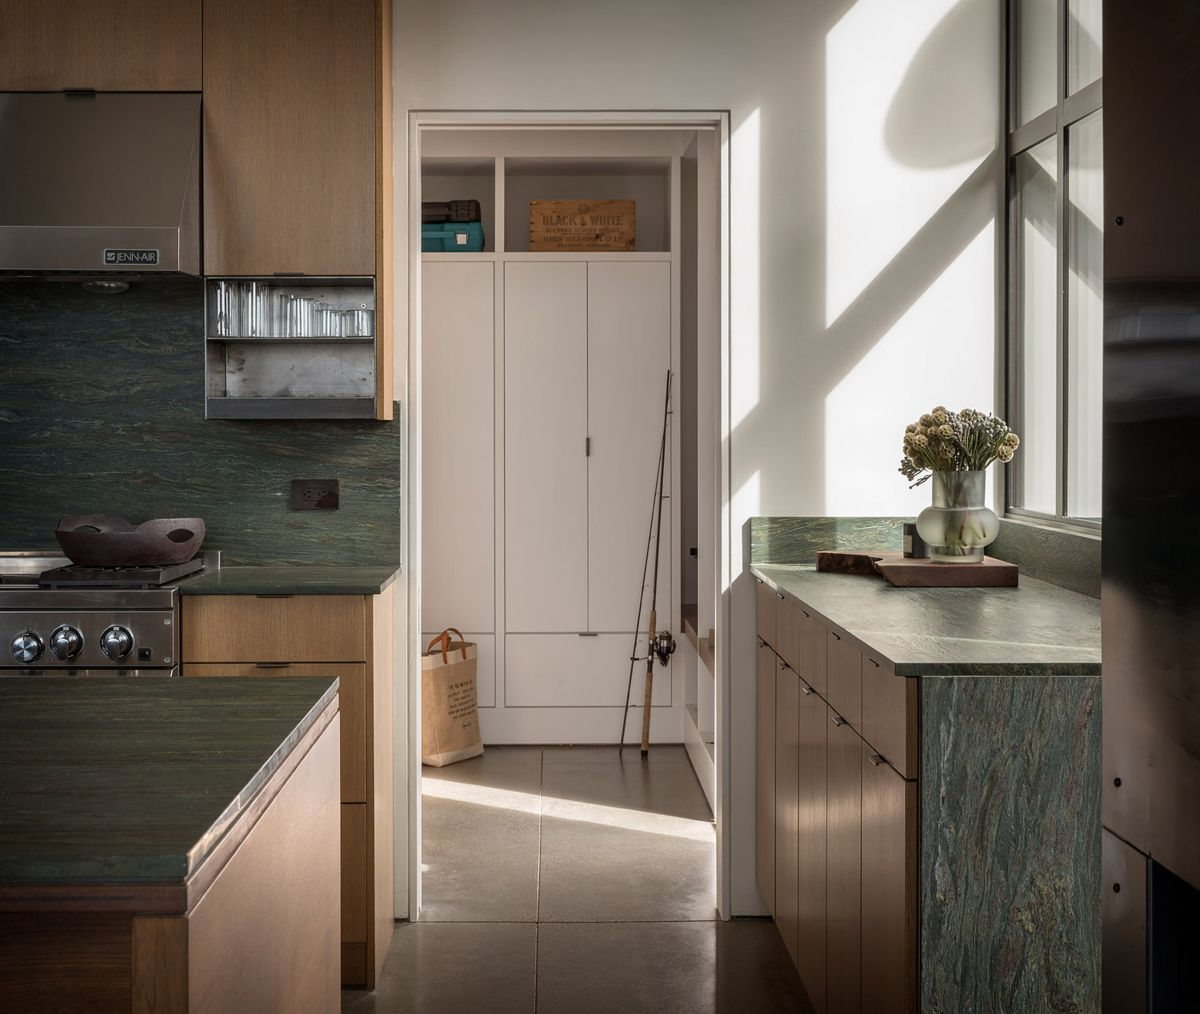 The kitchen is done with light colored wood and green stone